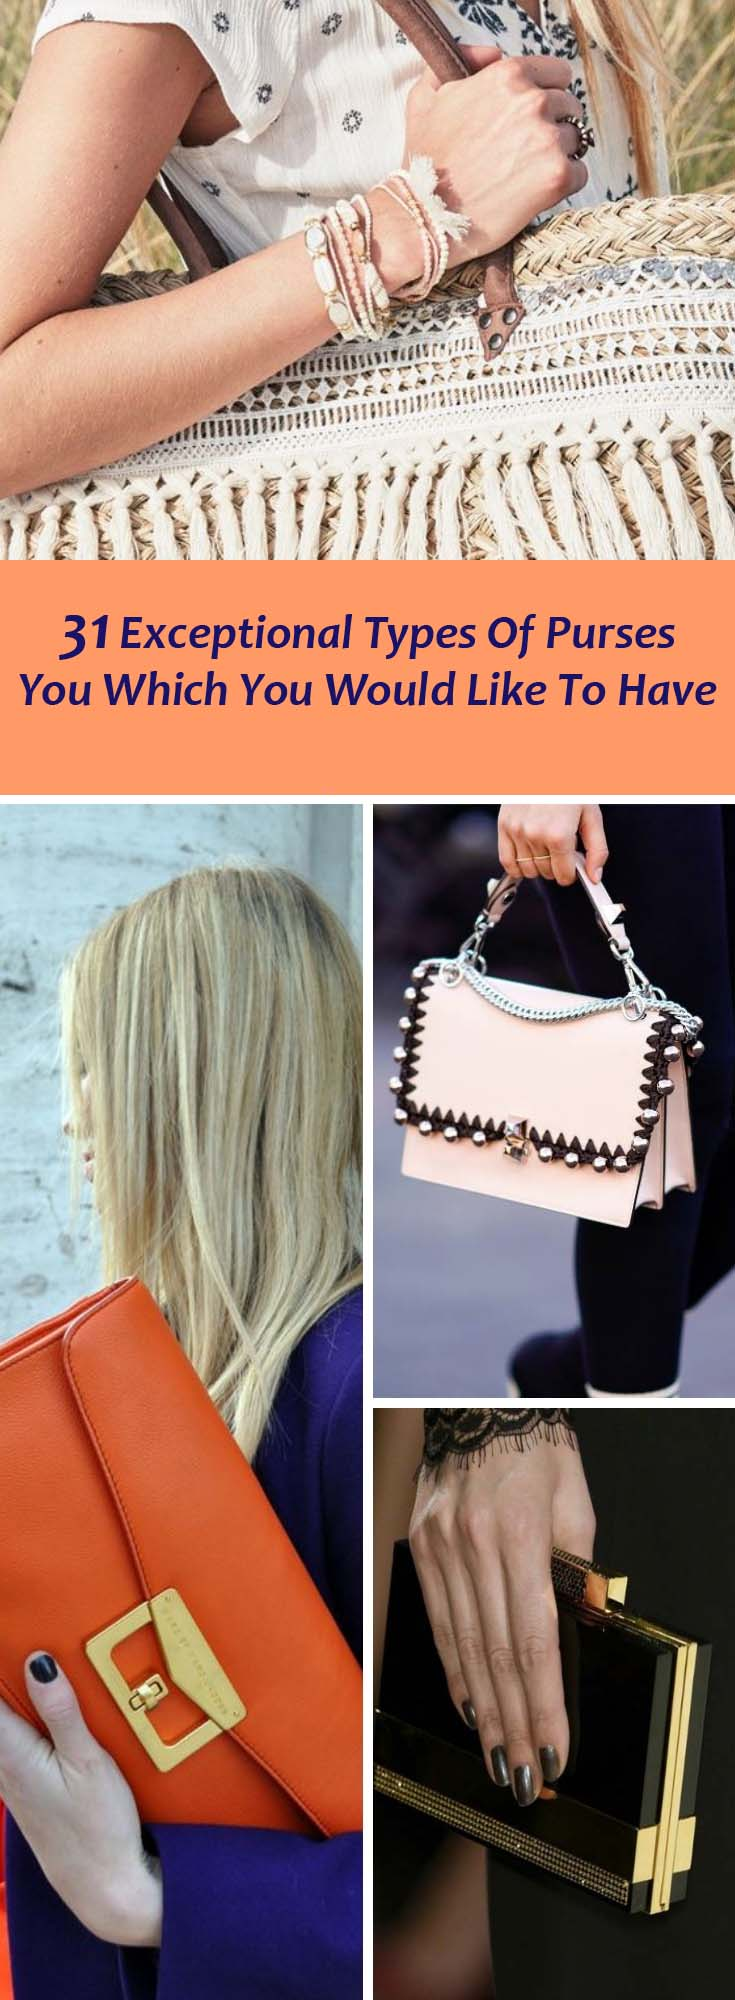 31 Exceptional Types Of Purses You Which You Would Like To Have